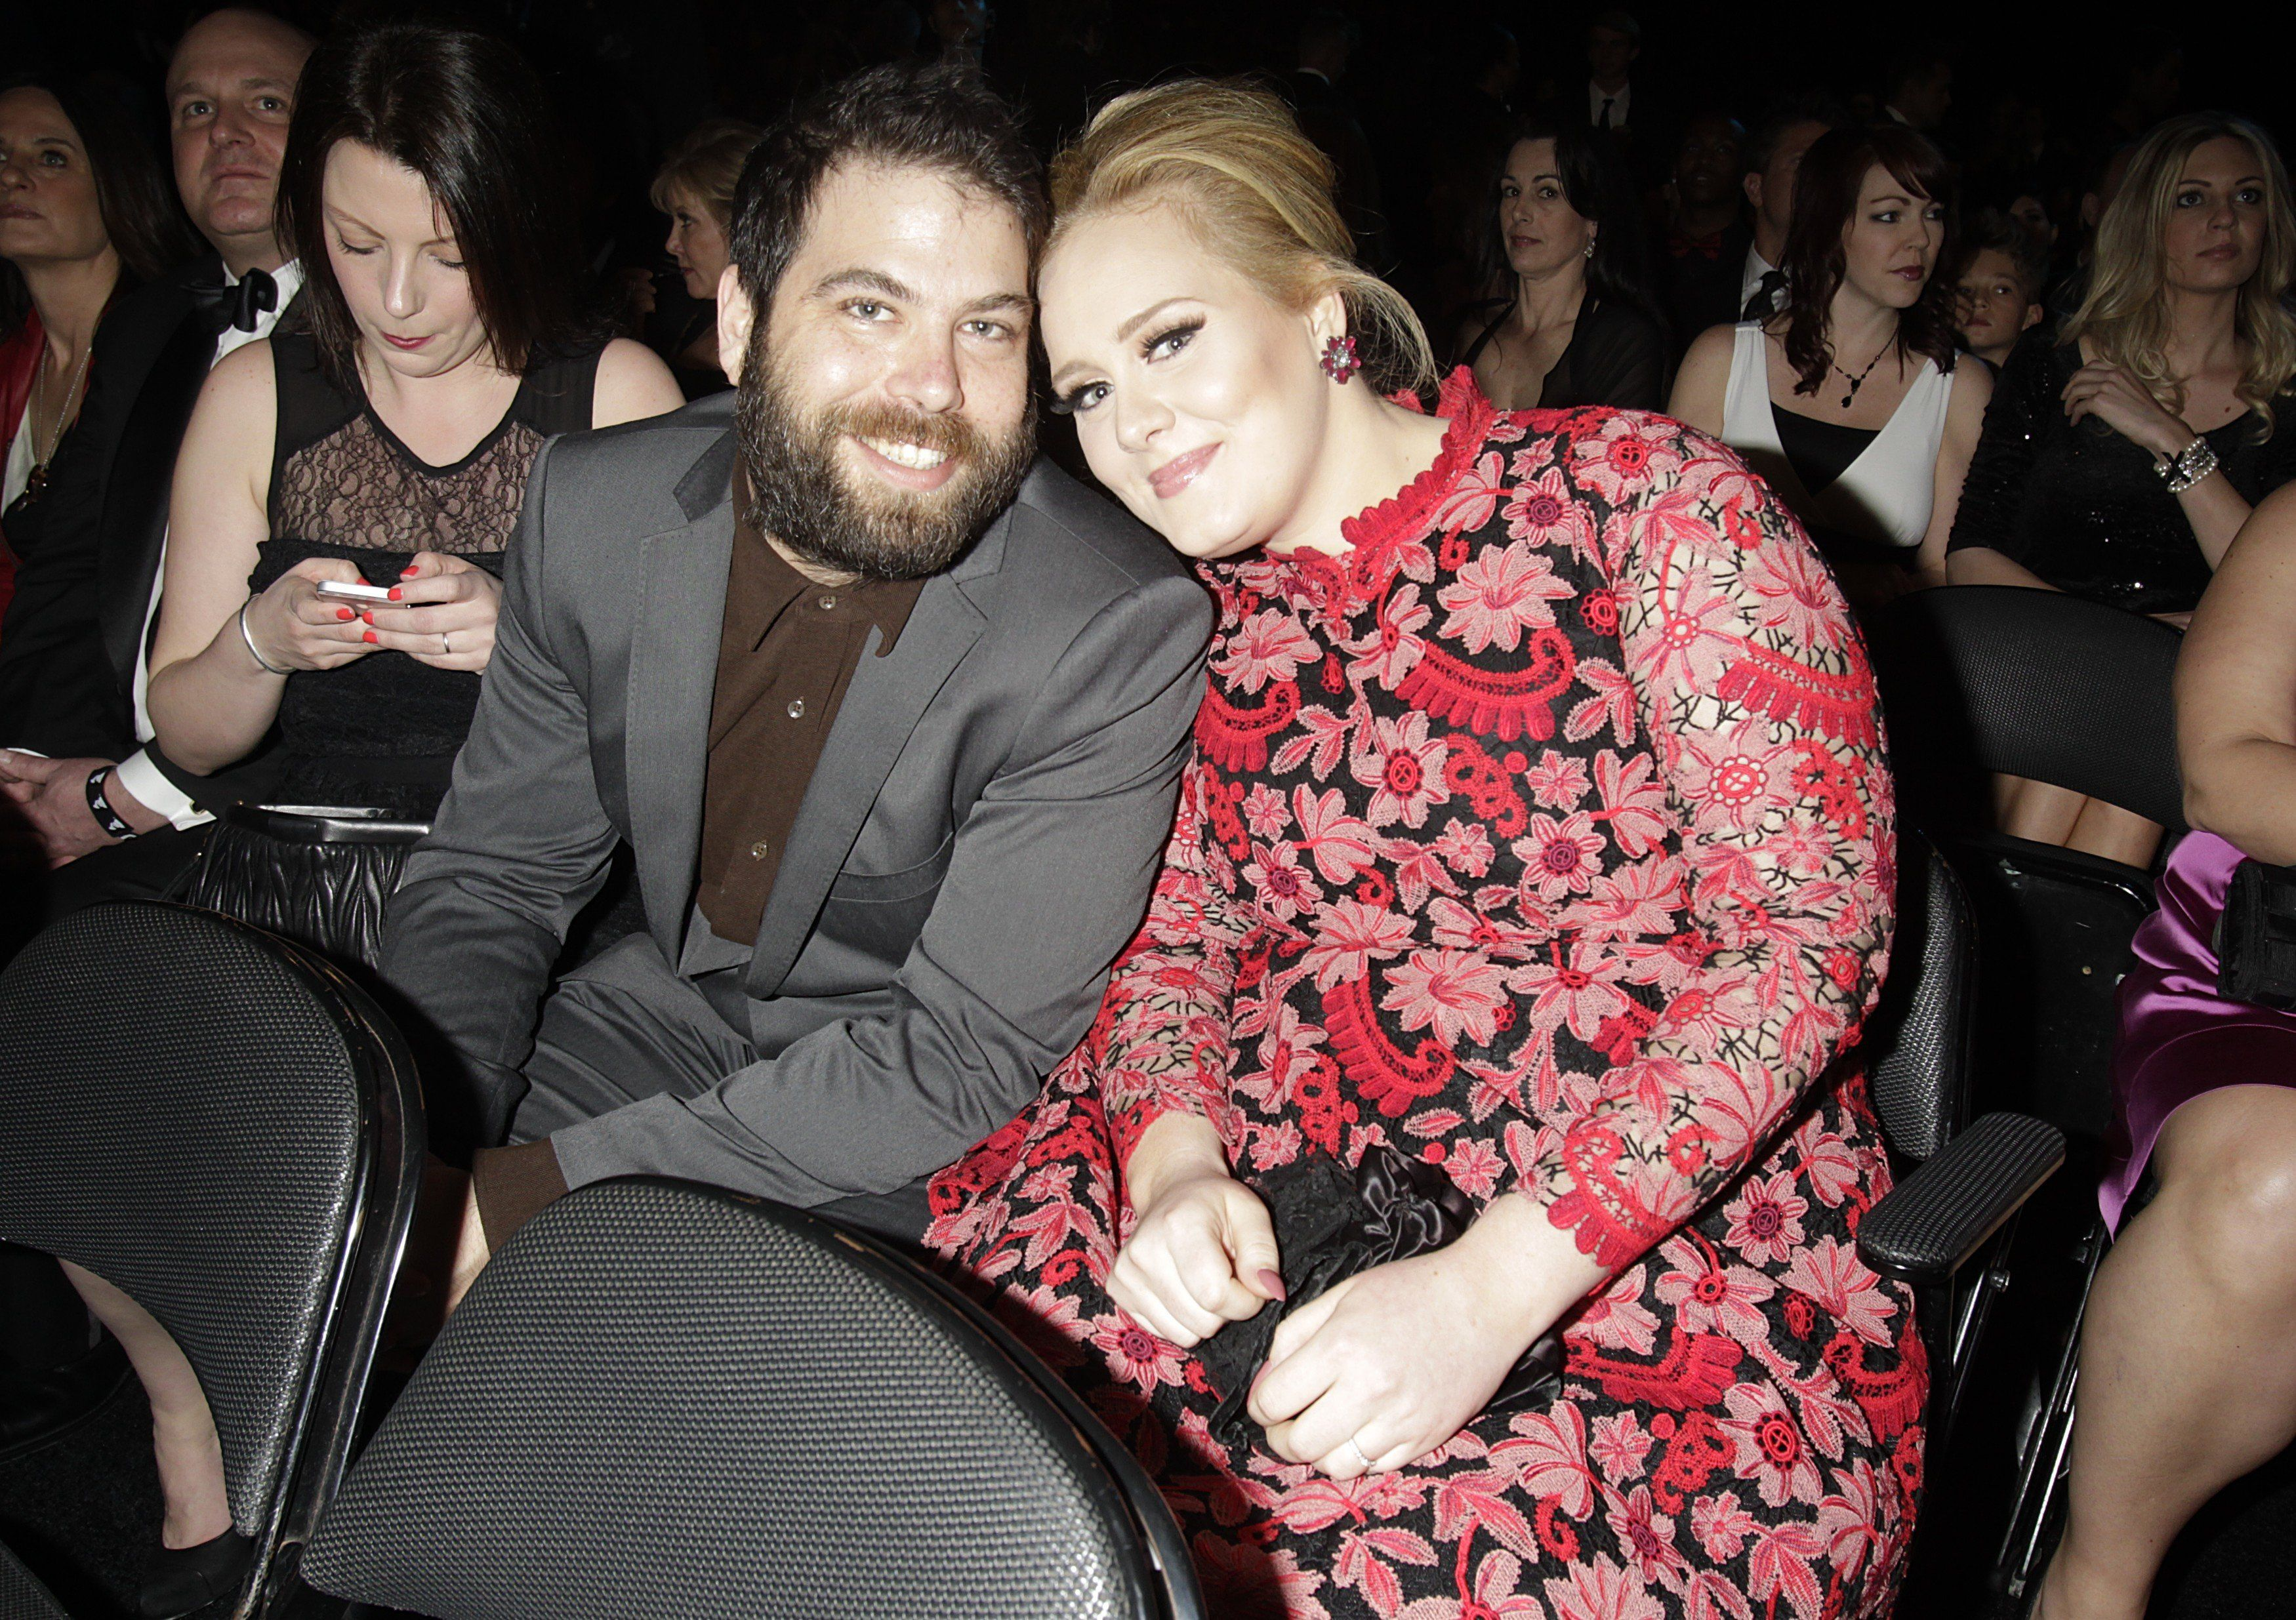 Adele and Simon Konecki looking adorable at the Grammys in